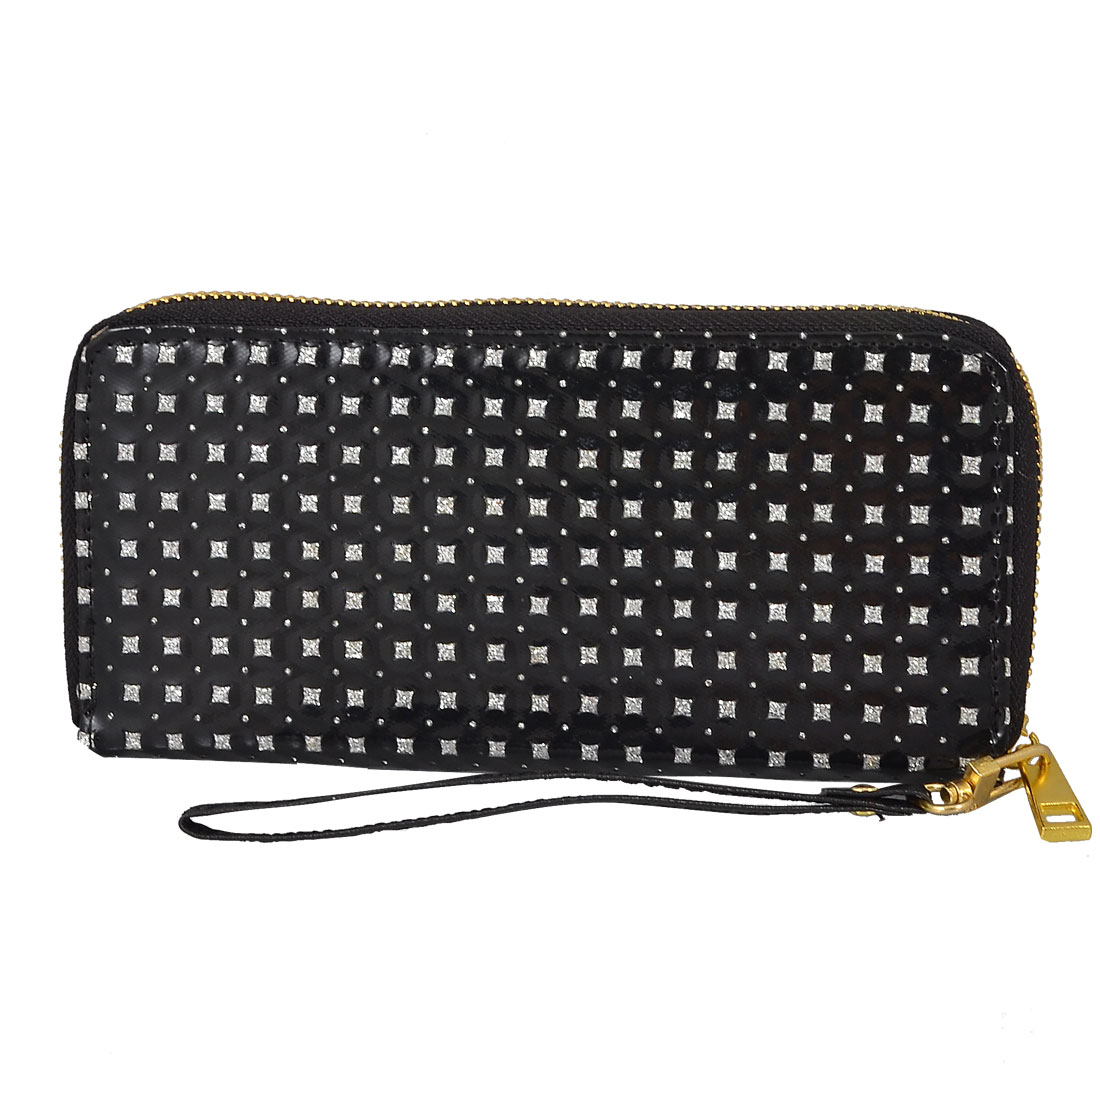 Woman Glittery Black Faux Leather Surface 3-pocket Wallet Purse Cards Holder